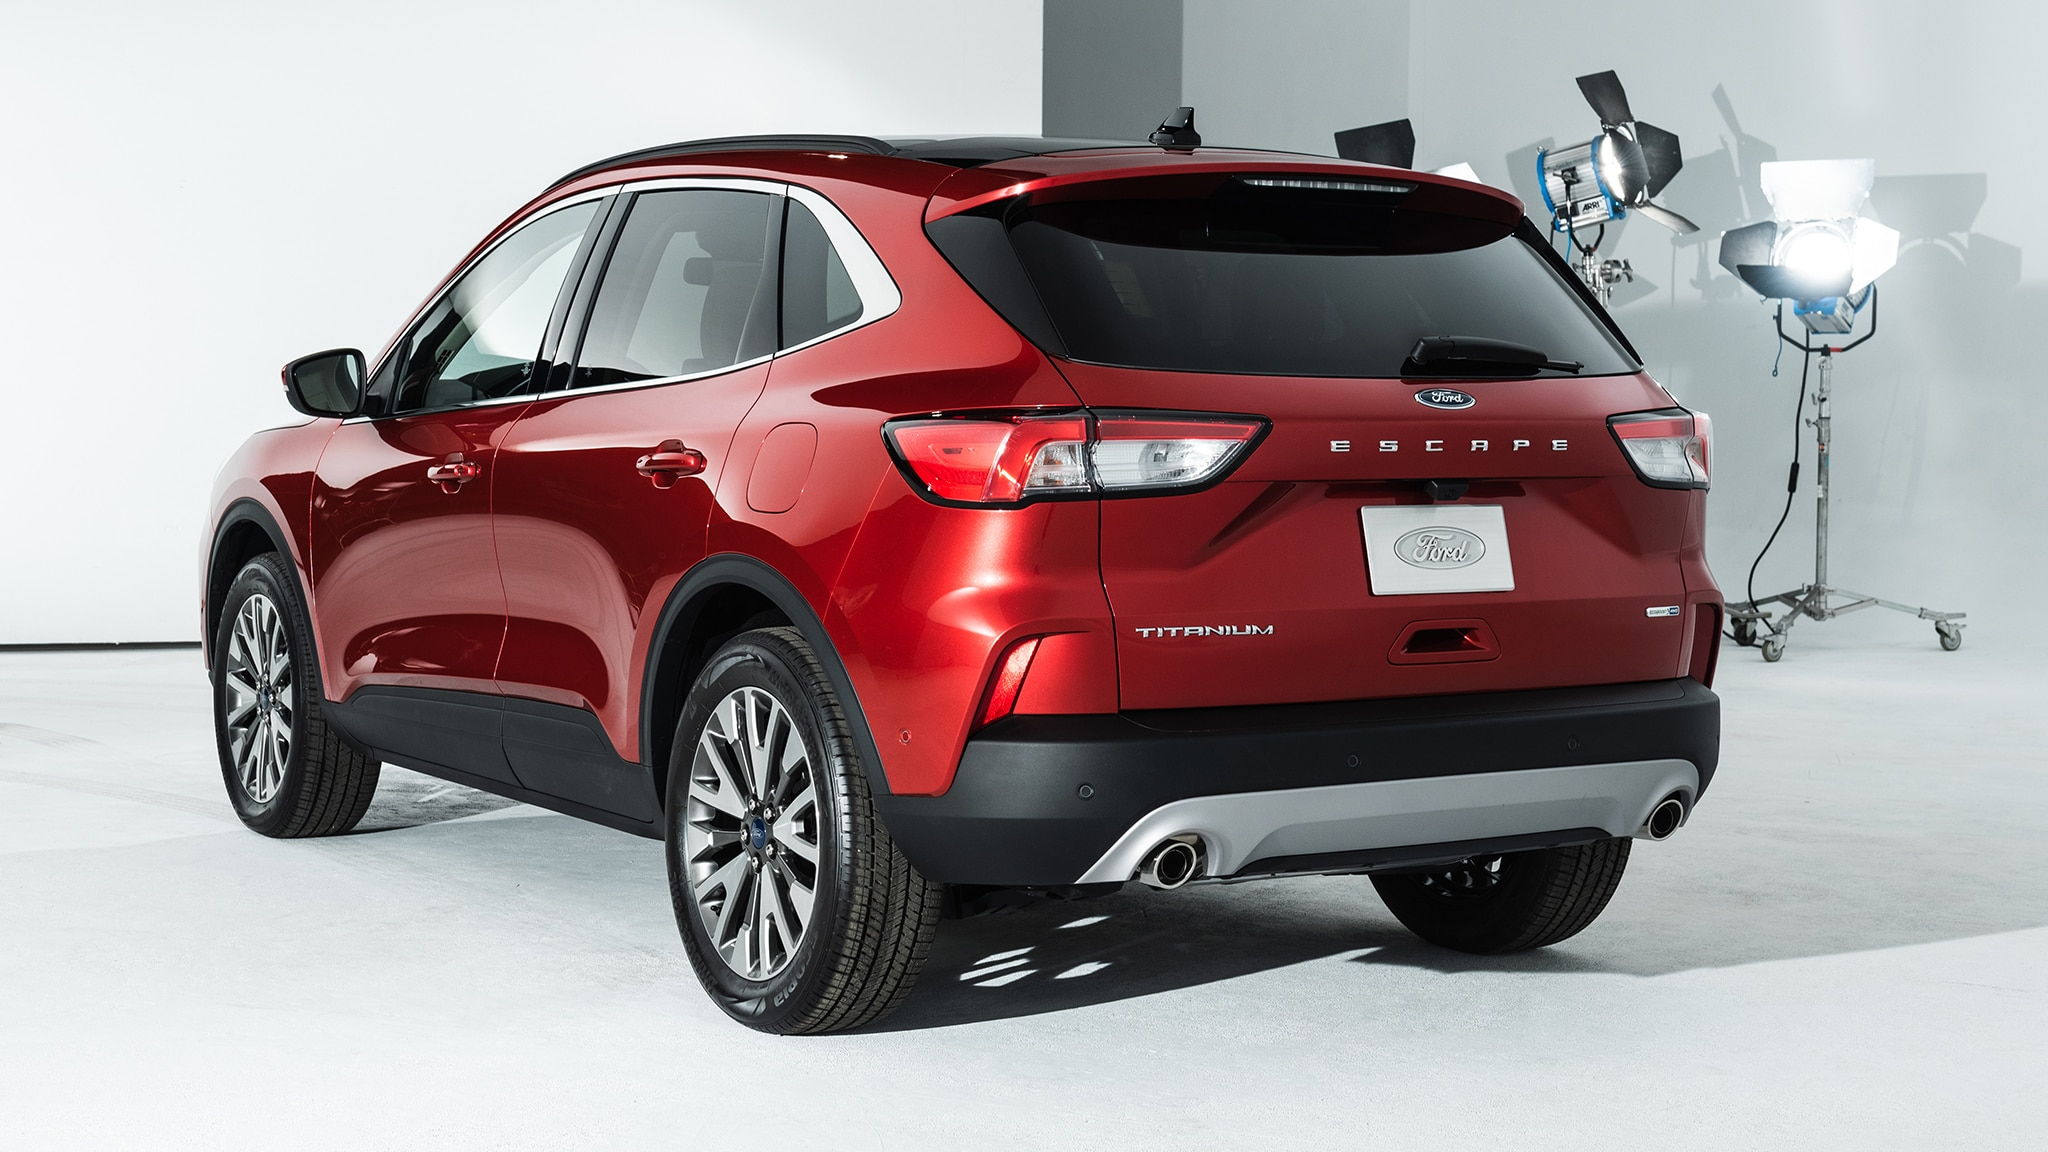 2020 Ford Escape: What We Know